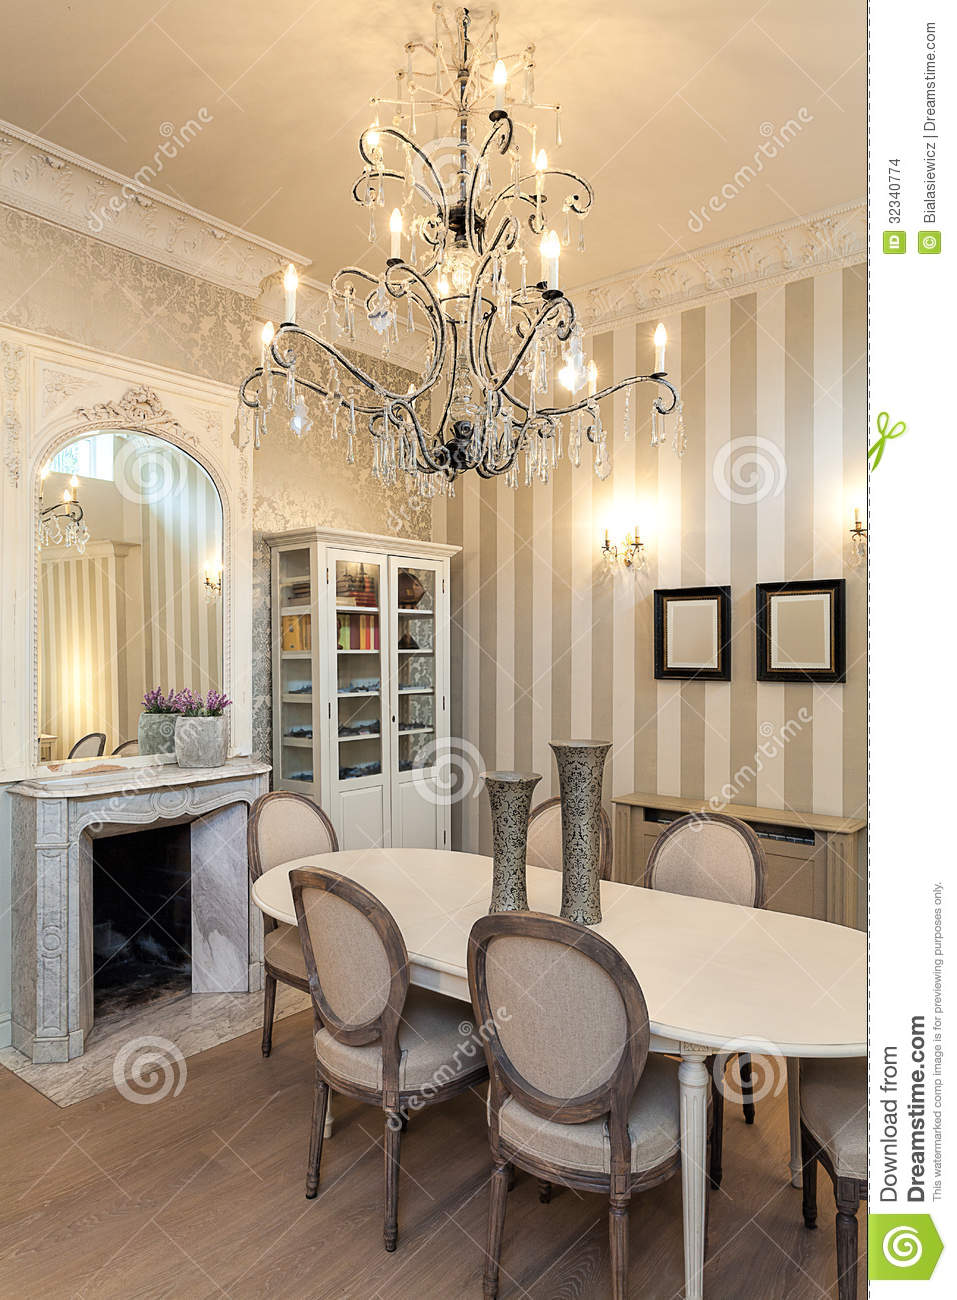 vintage mansion luxurious interior stock photo image of home floor 32340774. Black Bedroom Furniture Sets. Home Design Ideas